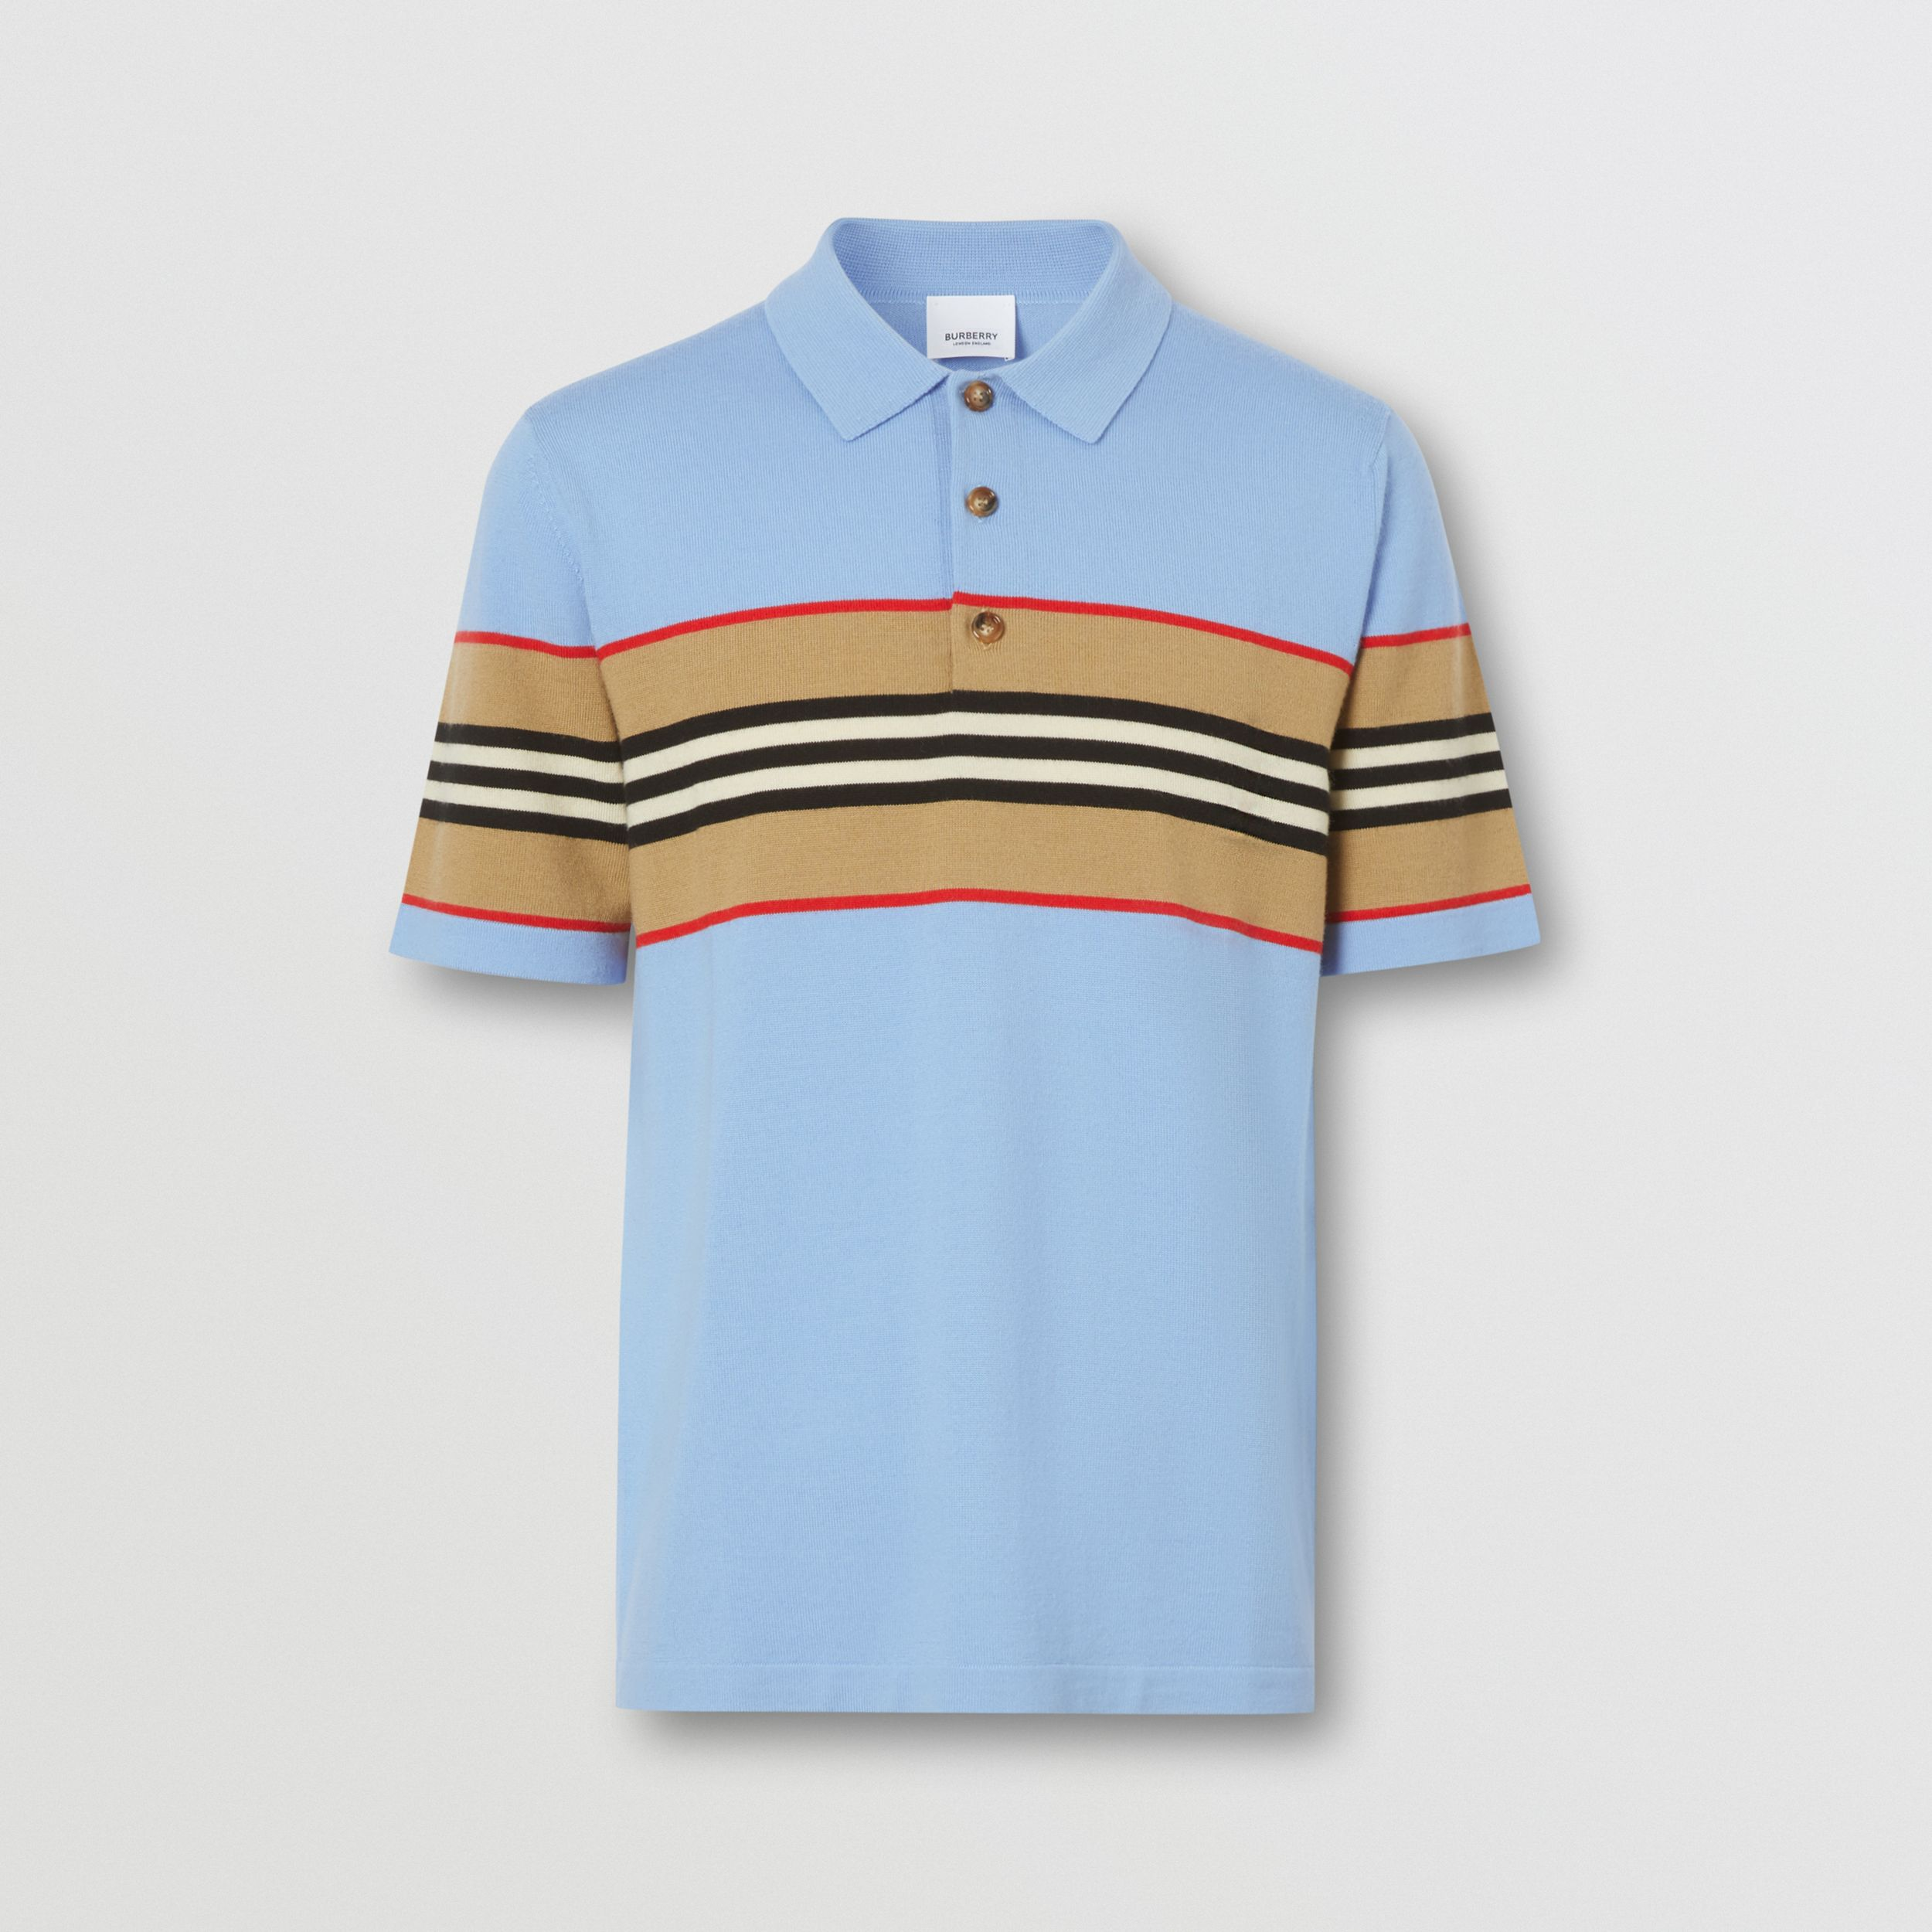 Icon Stripe Detail Merino Wool Polo Shirt in Pale Blue - Men | Burberry - 4